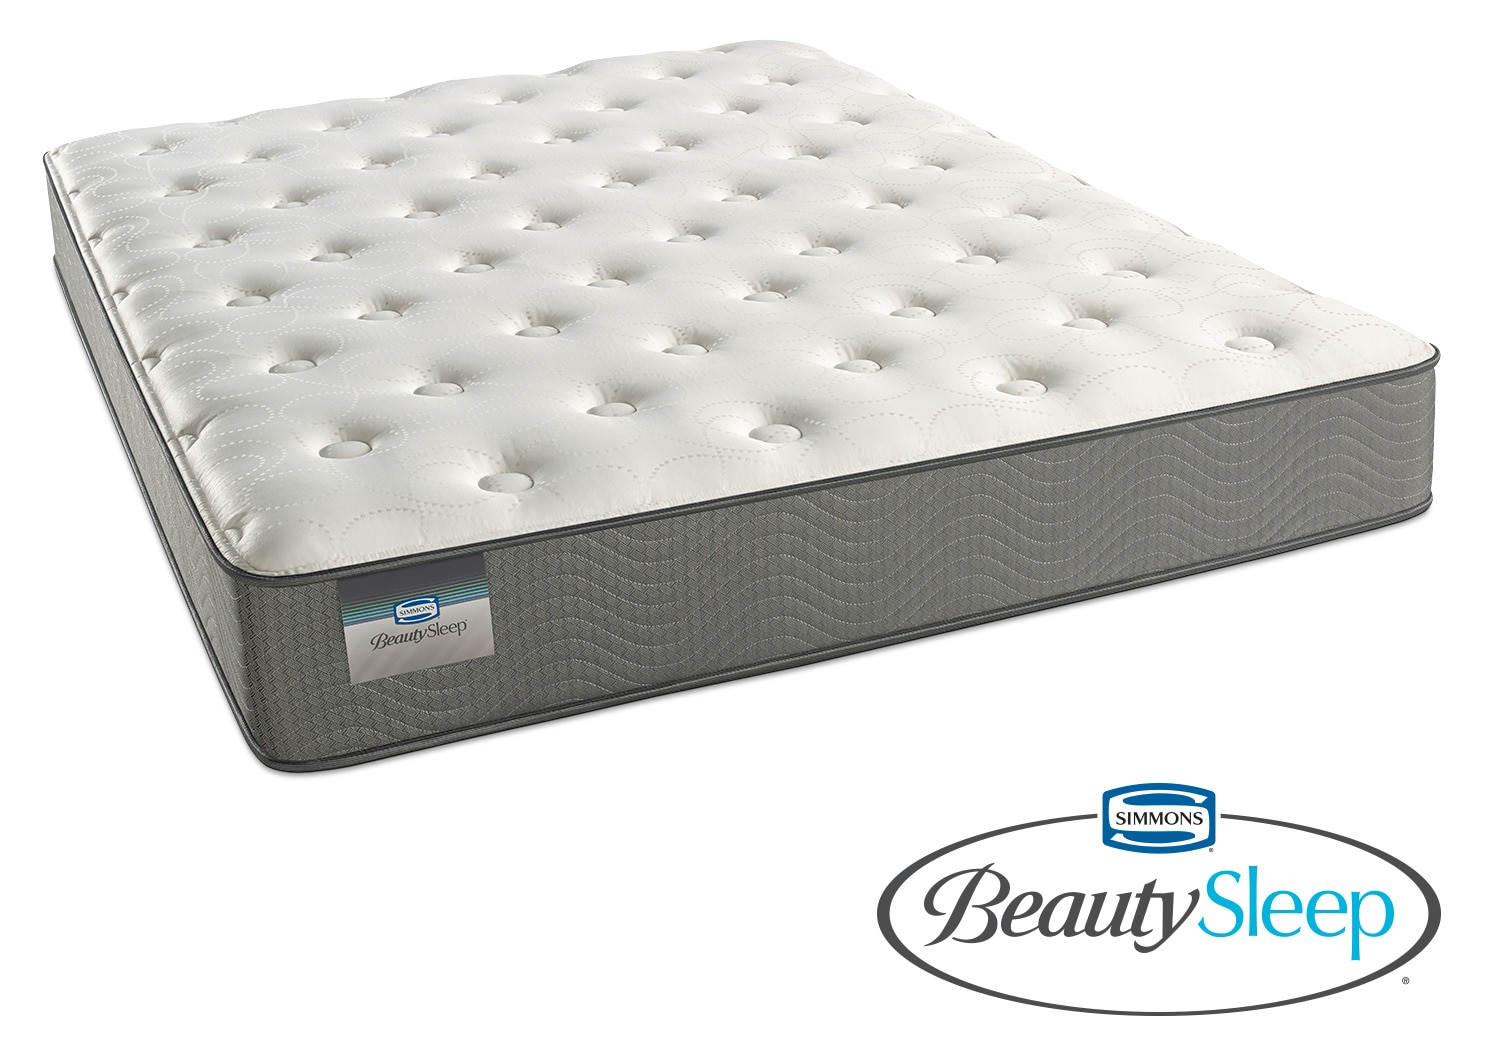 Mattresses and Bedding - Sapphire Blue Luxury Firm Queen Mattress